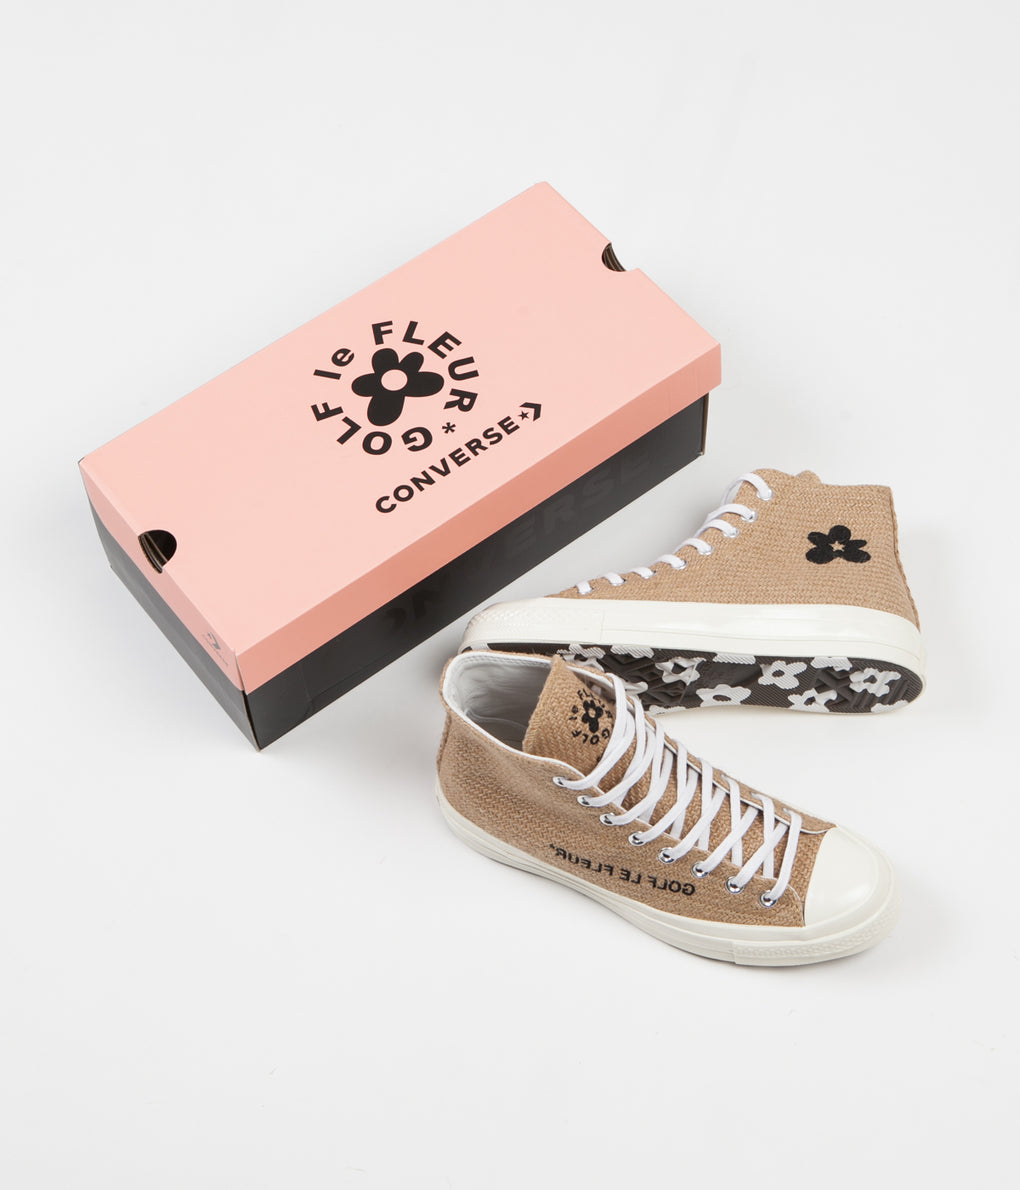 Converse Golf Le Fleur Chuck 70's Hi Shoes - Curry / Egret / Black